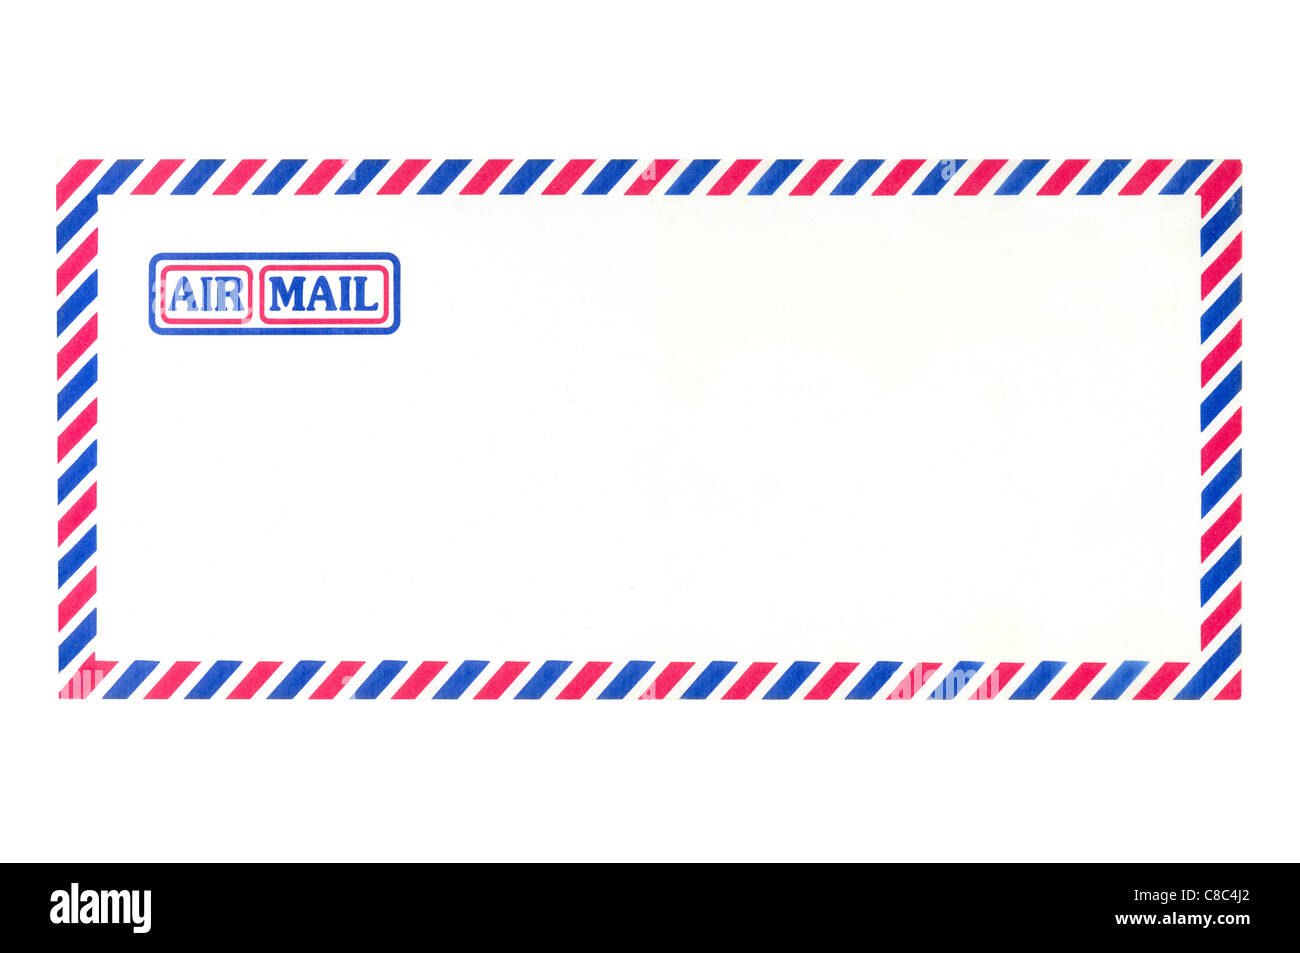 Air Mail Envelope on white background - Stock Image